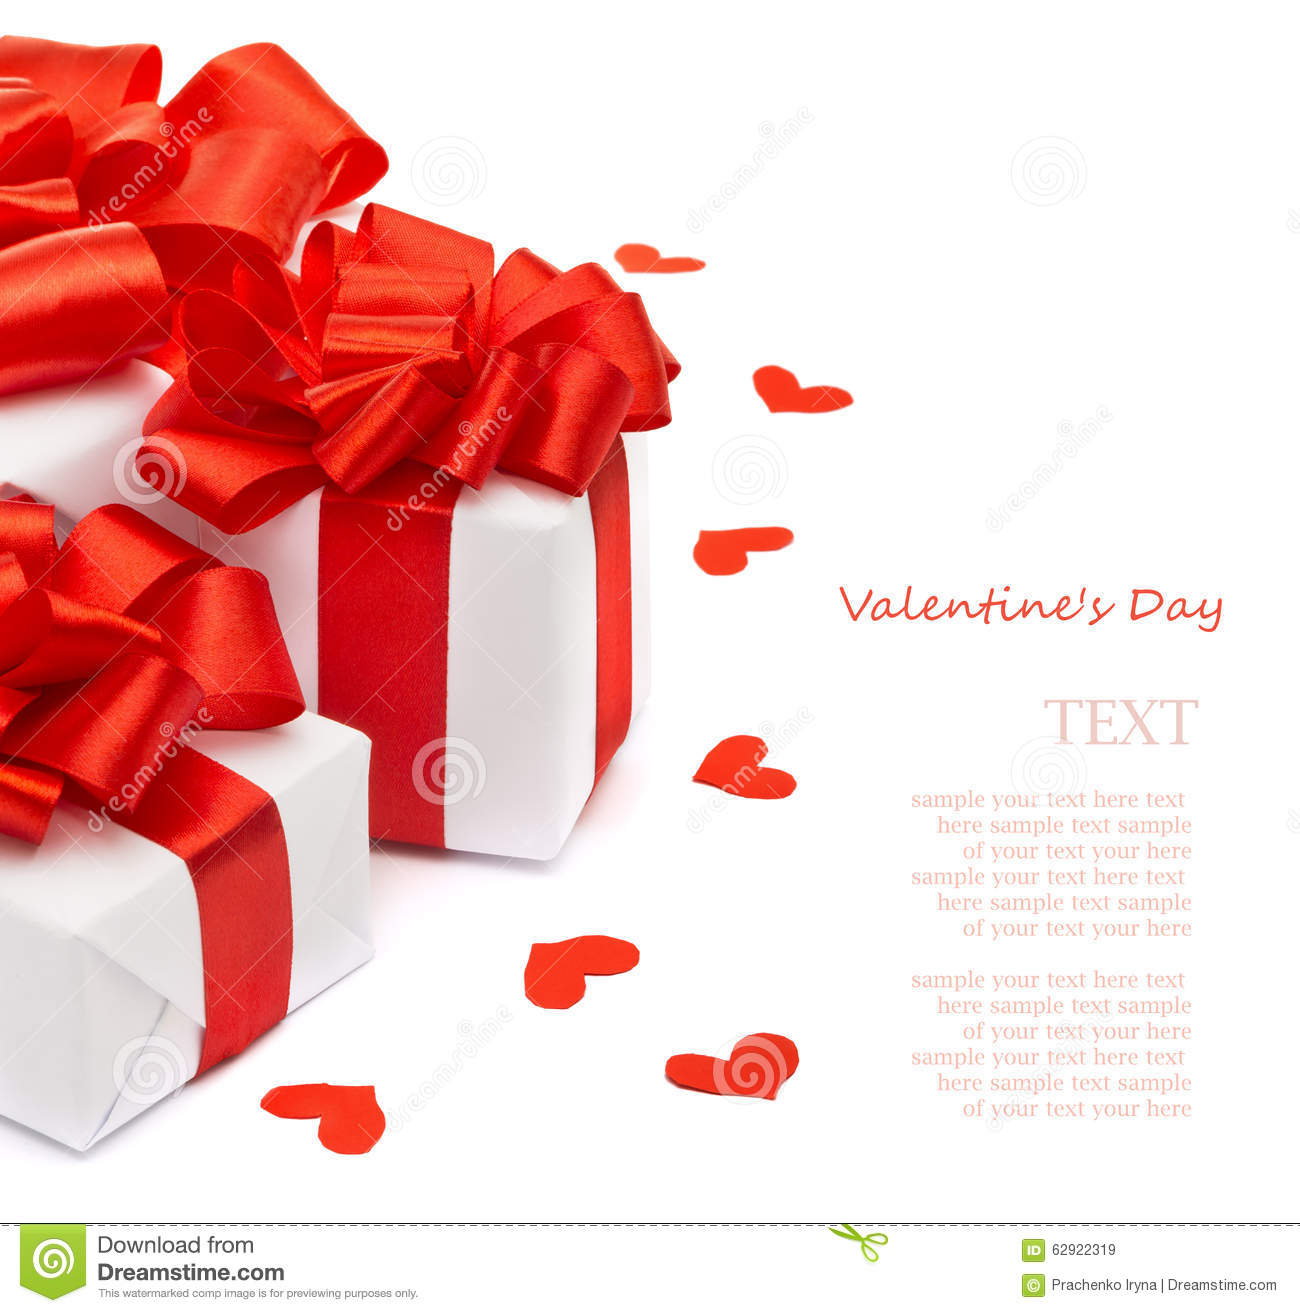 Valentines day gifts stock photo image 62922319 for Valentines day photo gifts